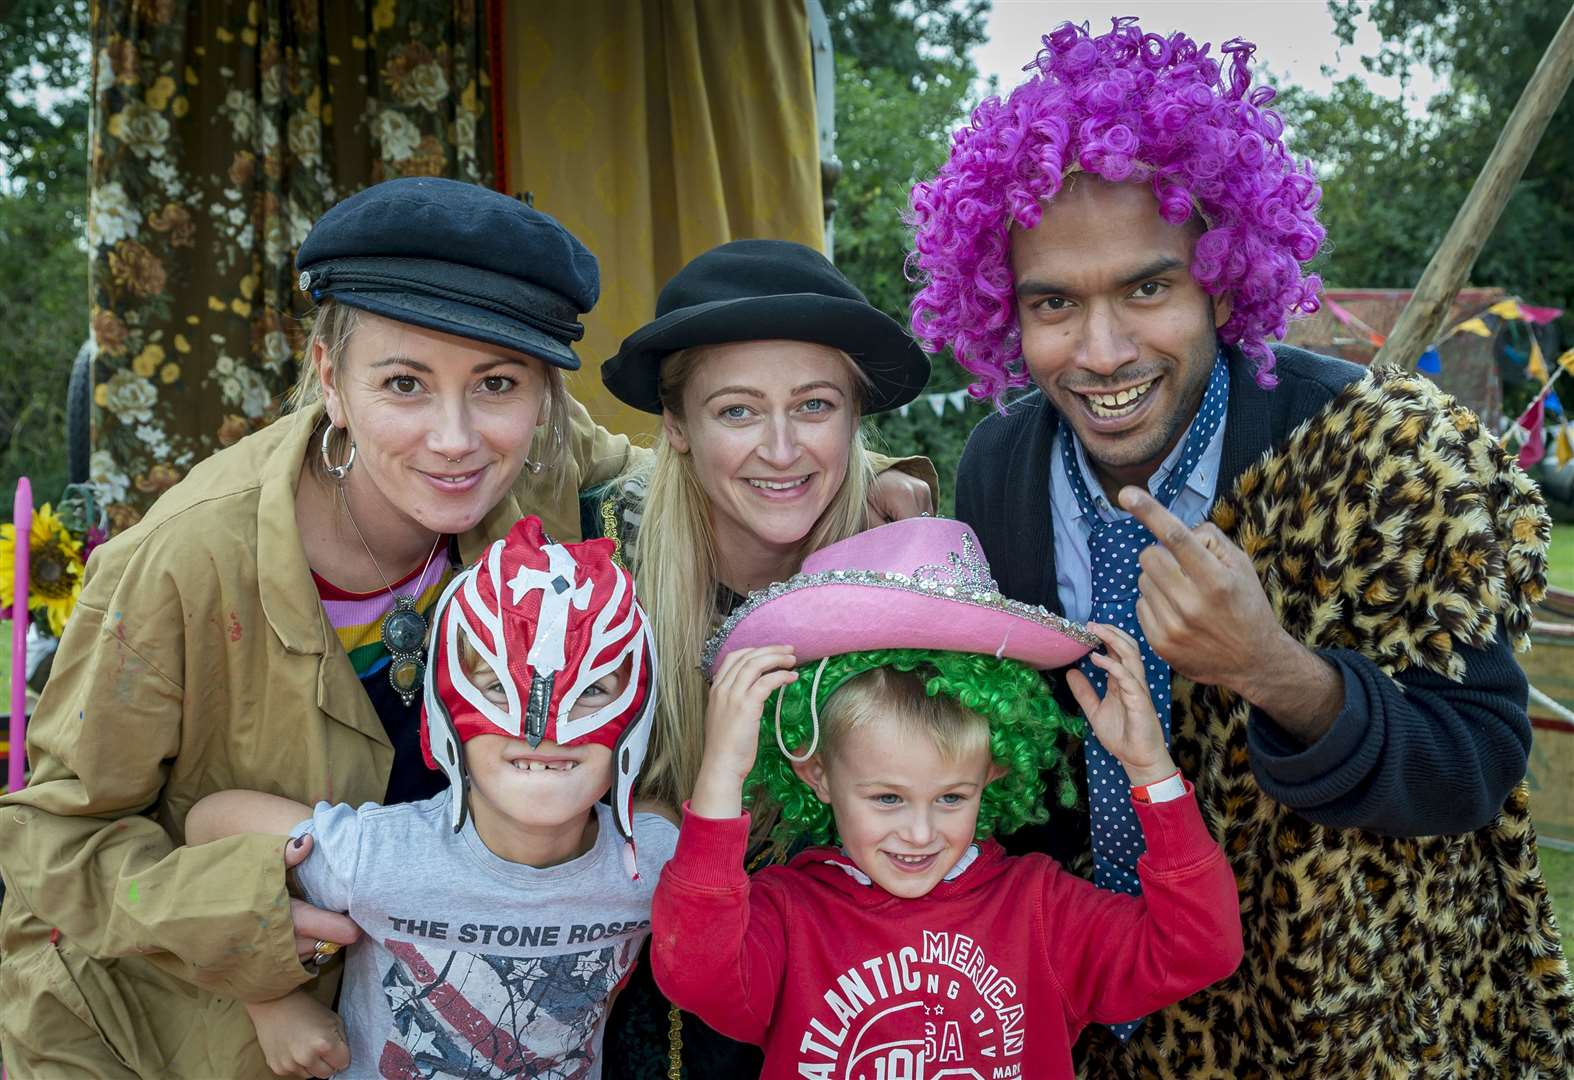 Gallery: Family STEAM Festival at The Spinney attracts more than 1,000 people